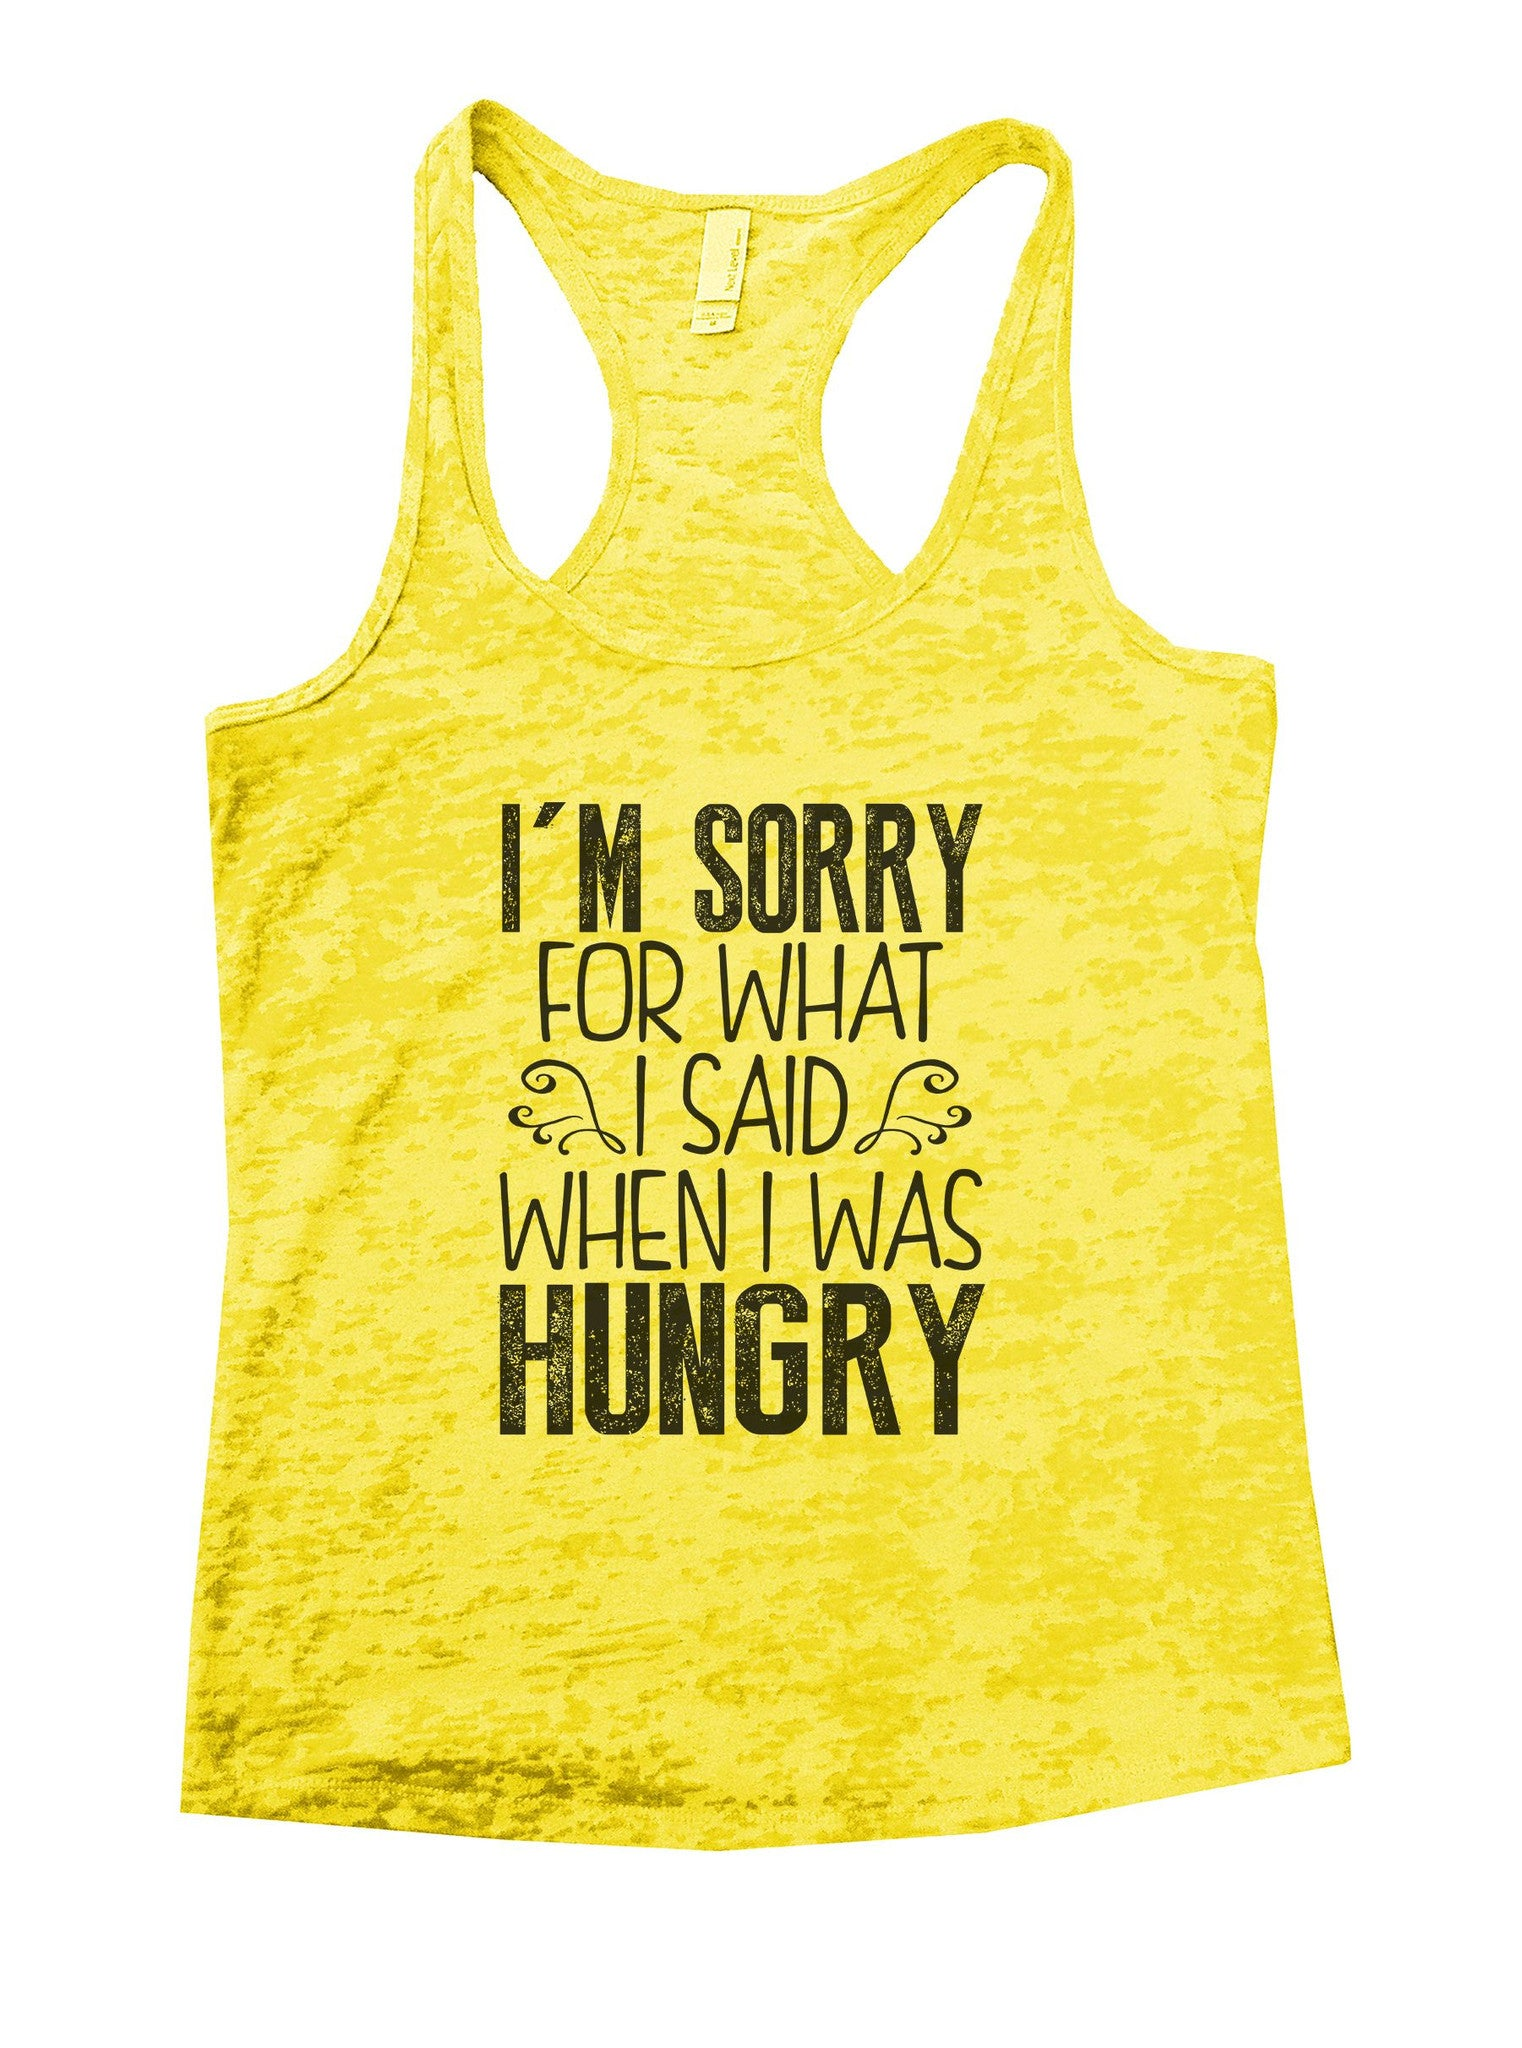 I'm Sorry For What I Said When I Was Hungry Burnout Tank Top By BurnoutTankTops.com - 952 - Funny Shirts Tank Tops Burnouts and Triblends  - 7